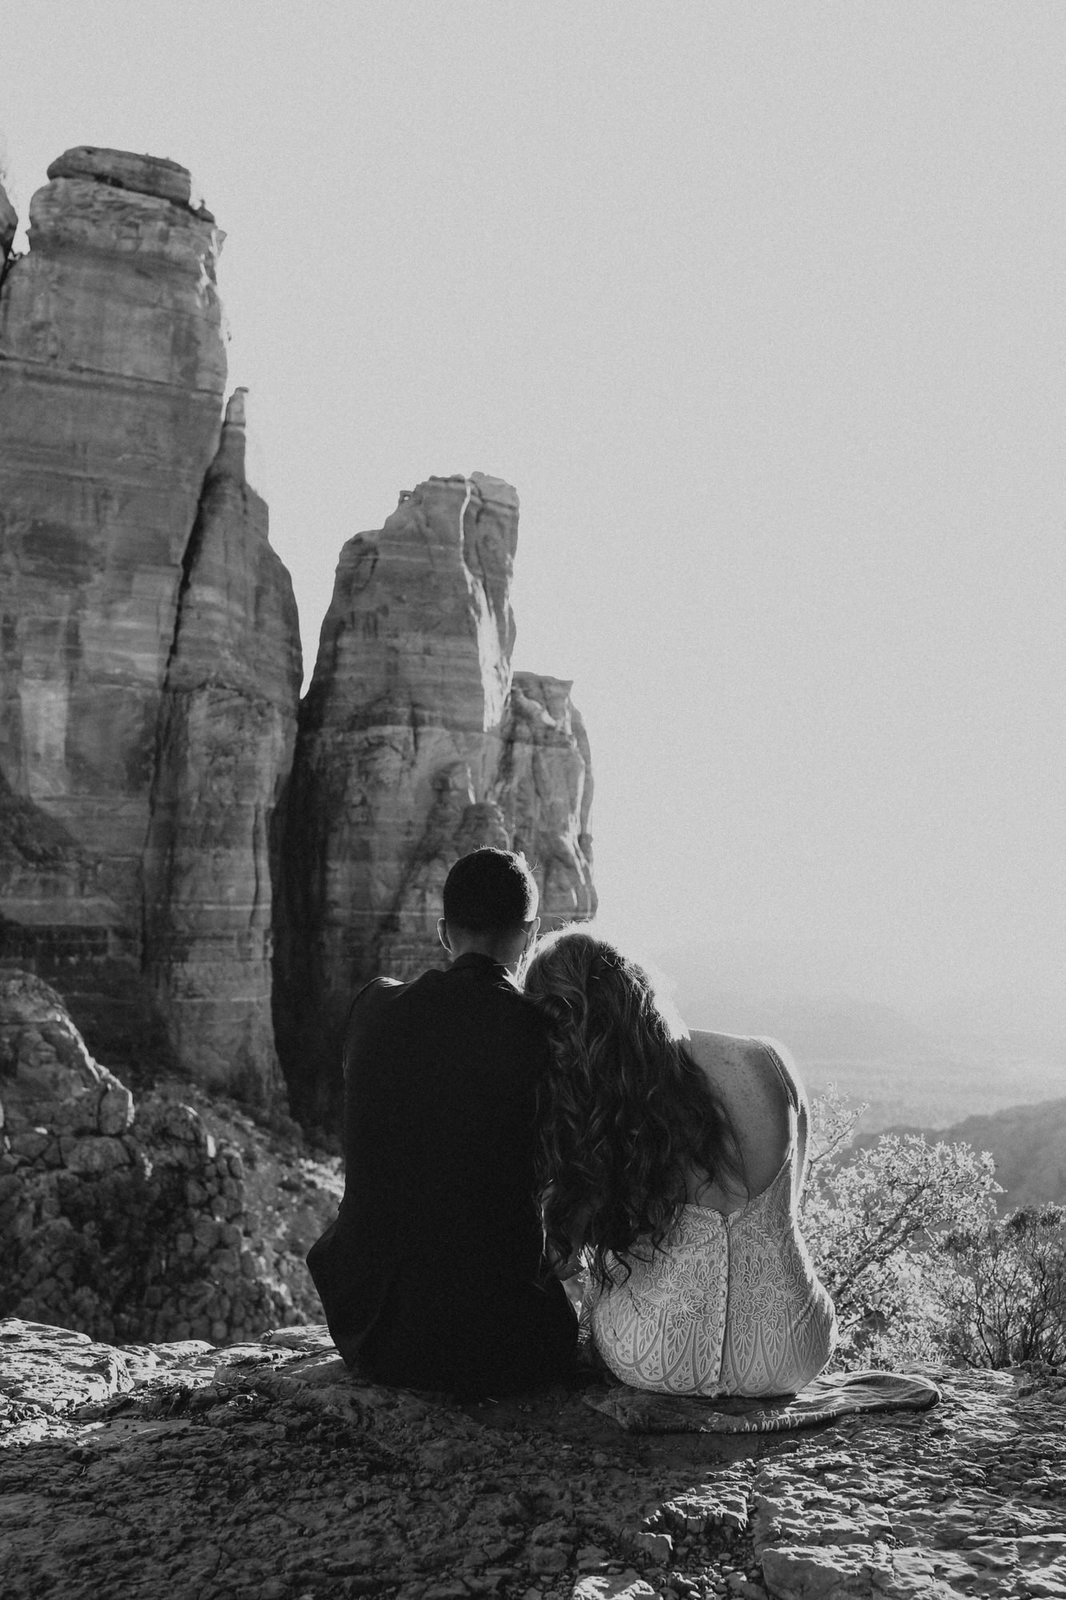 detail shot of couple admiring cathedral rock.